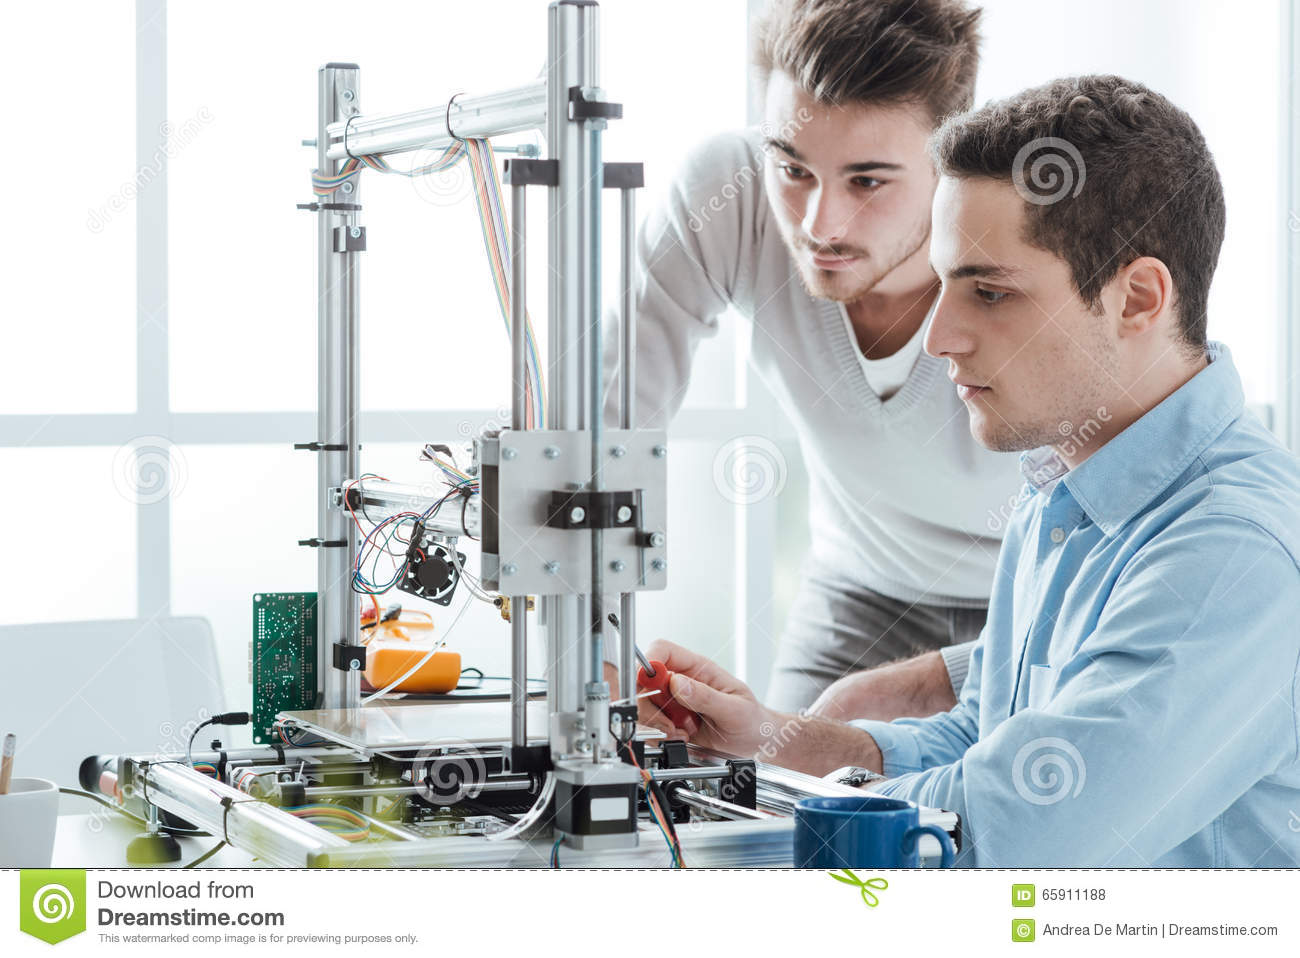 Young students using a 3D printer